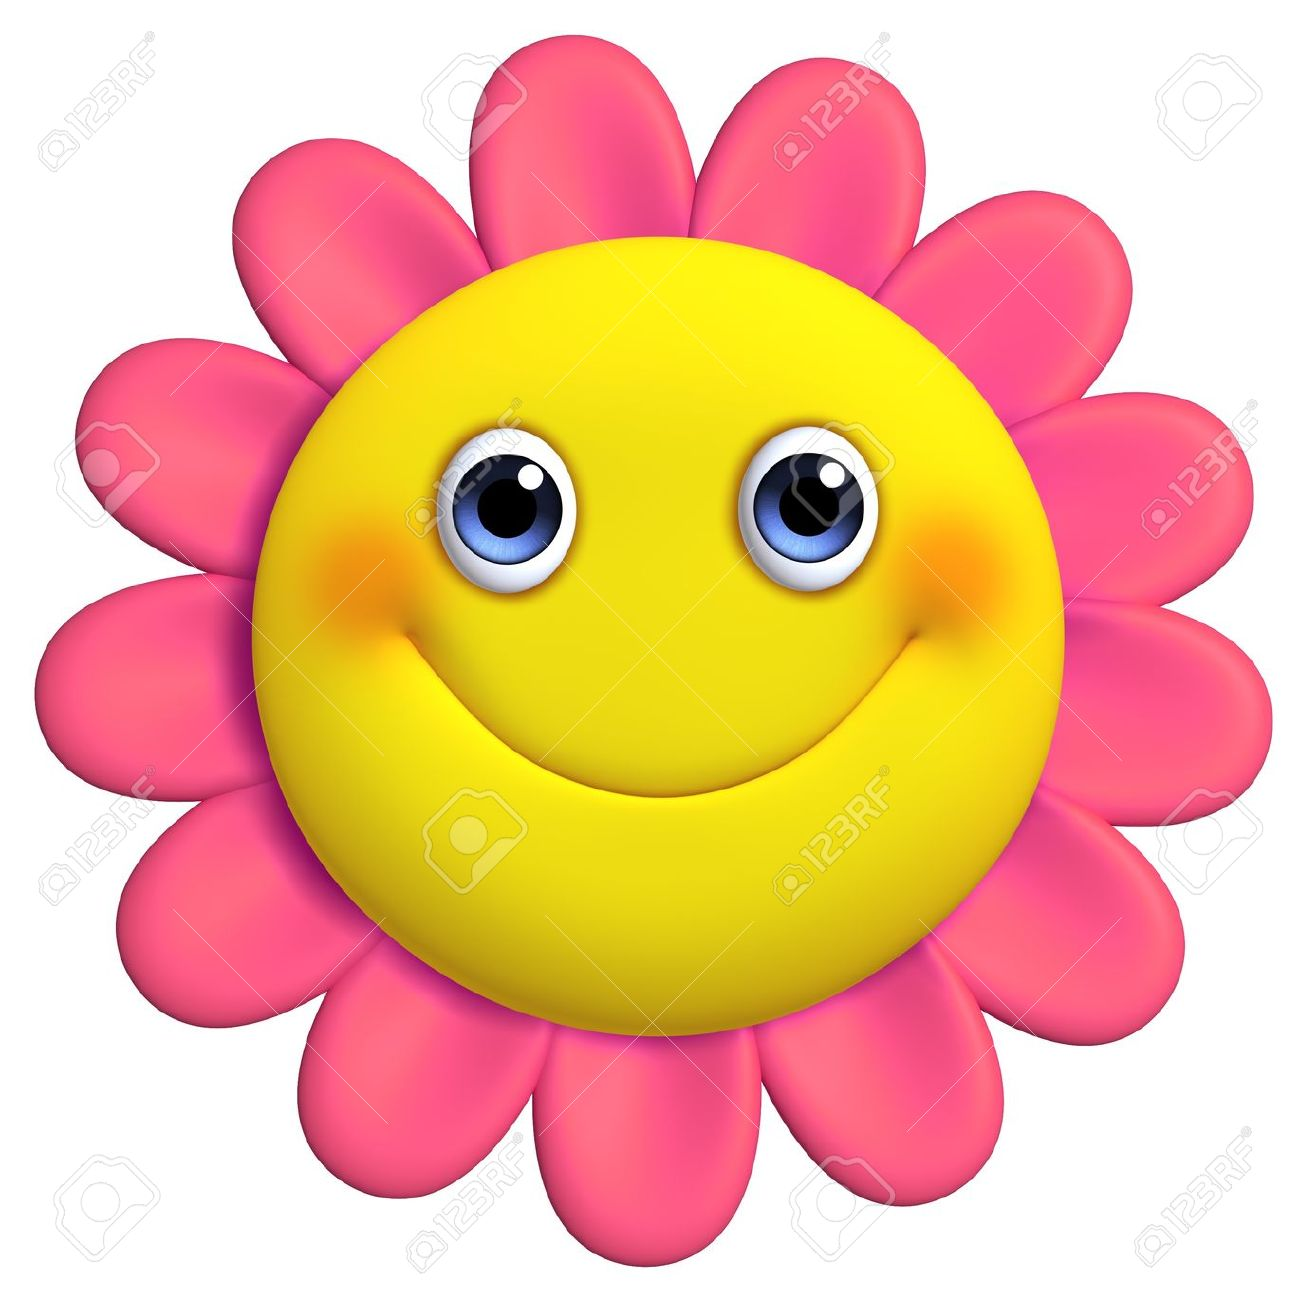 3d Cartoon Cute Flower Picture And Free Image